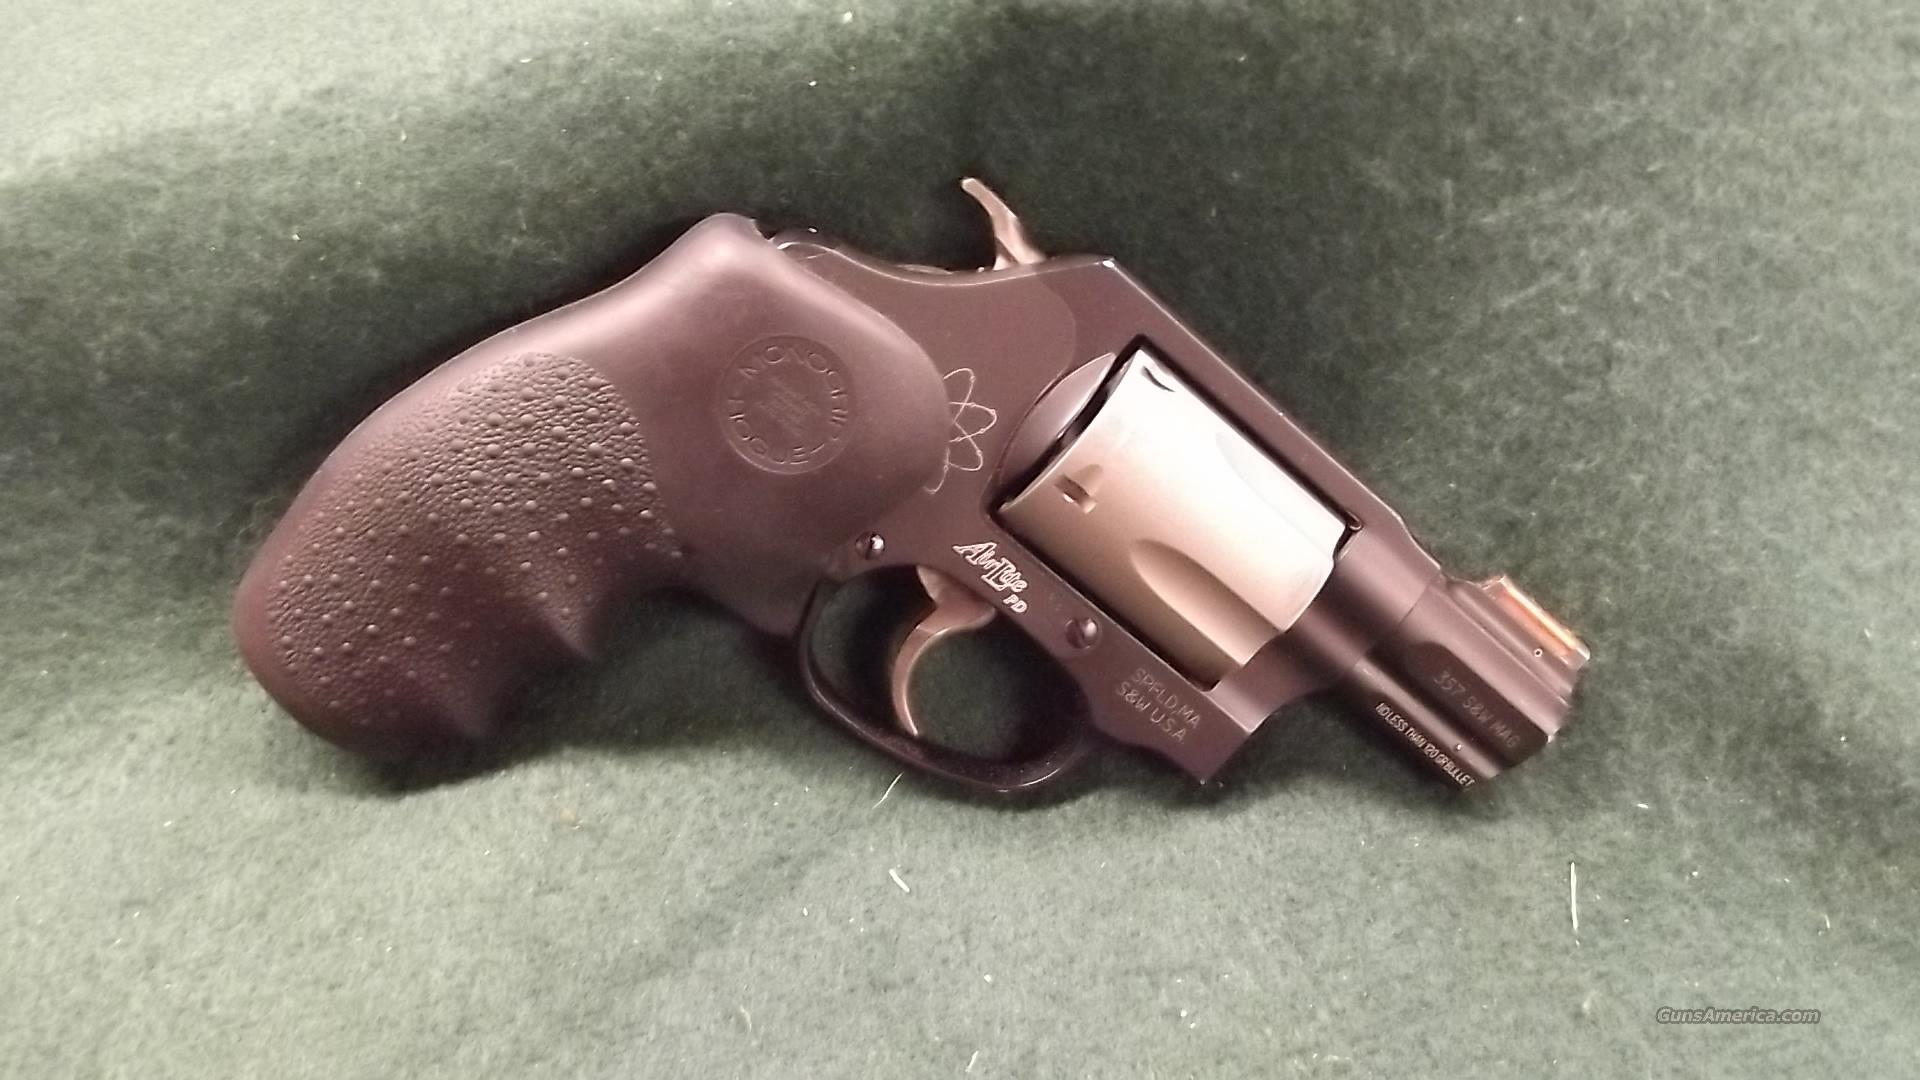 Smith & Wesson 360 PD    357 mag  Guns > Pistols > Smith & Wesson Revolvers > Pocket Pistols